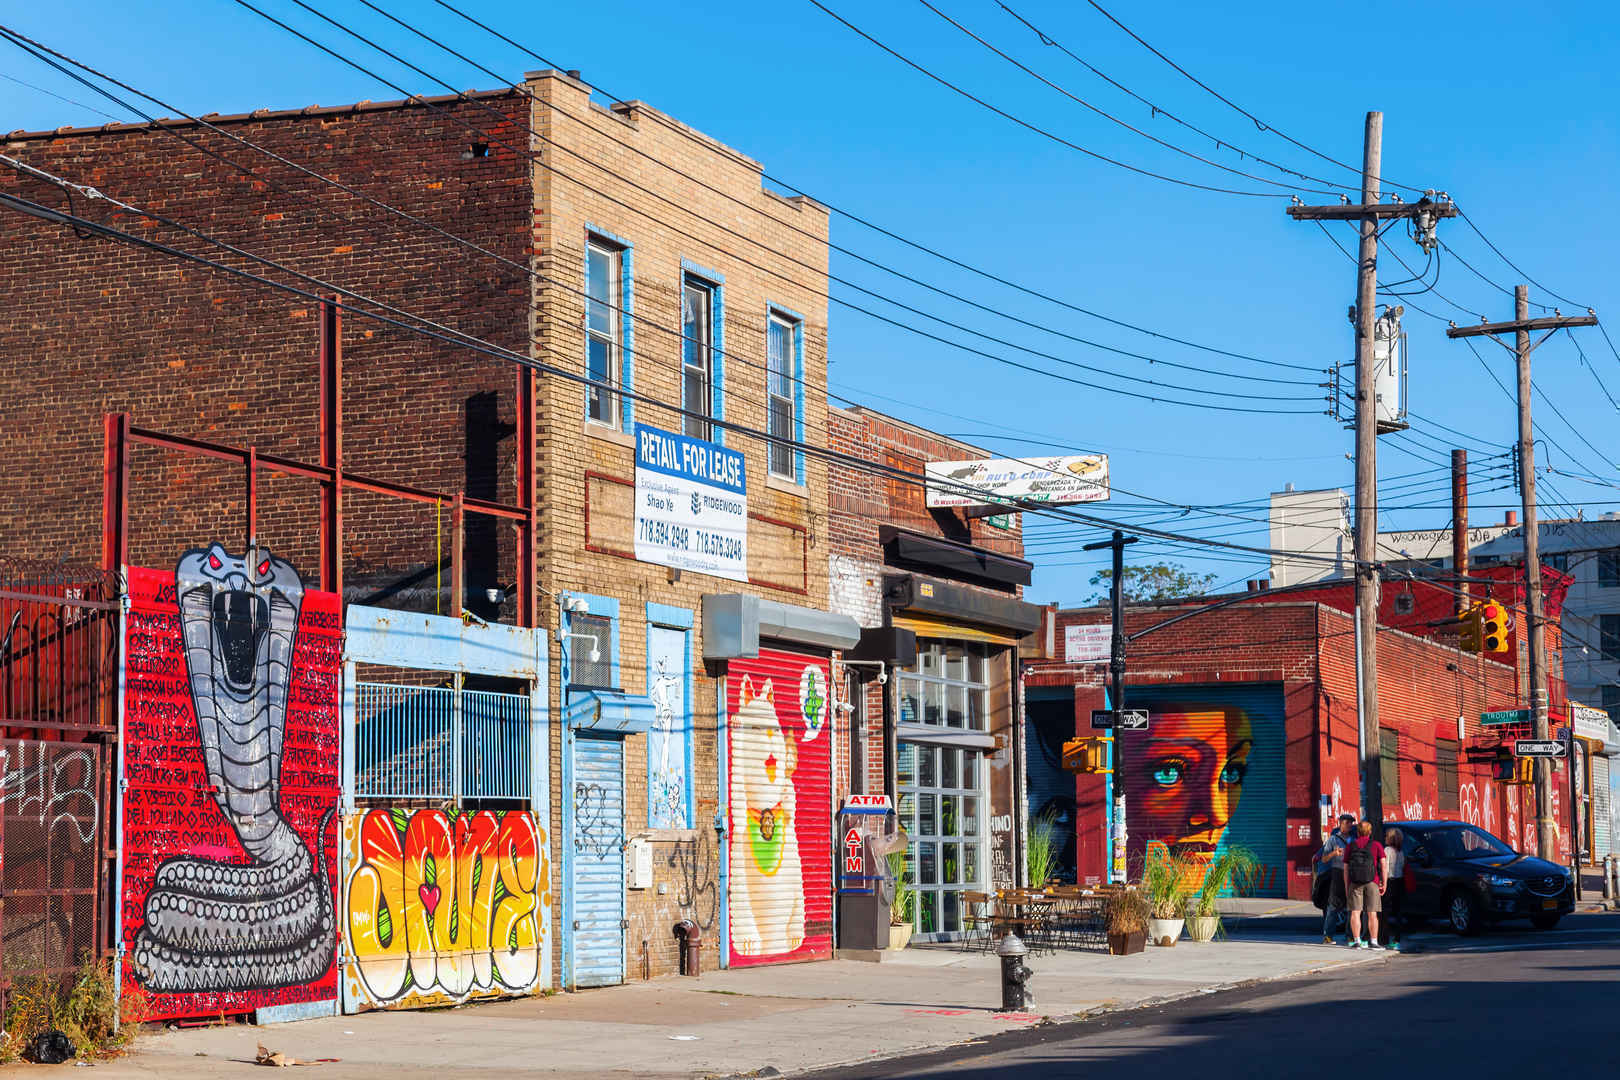 Residential street in Bushwick Brooklyn with graffiti mural art on buildings